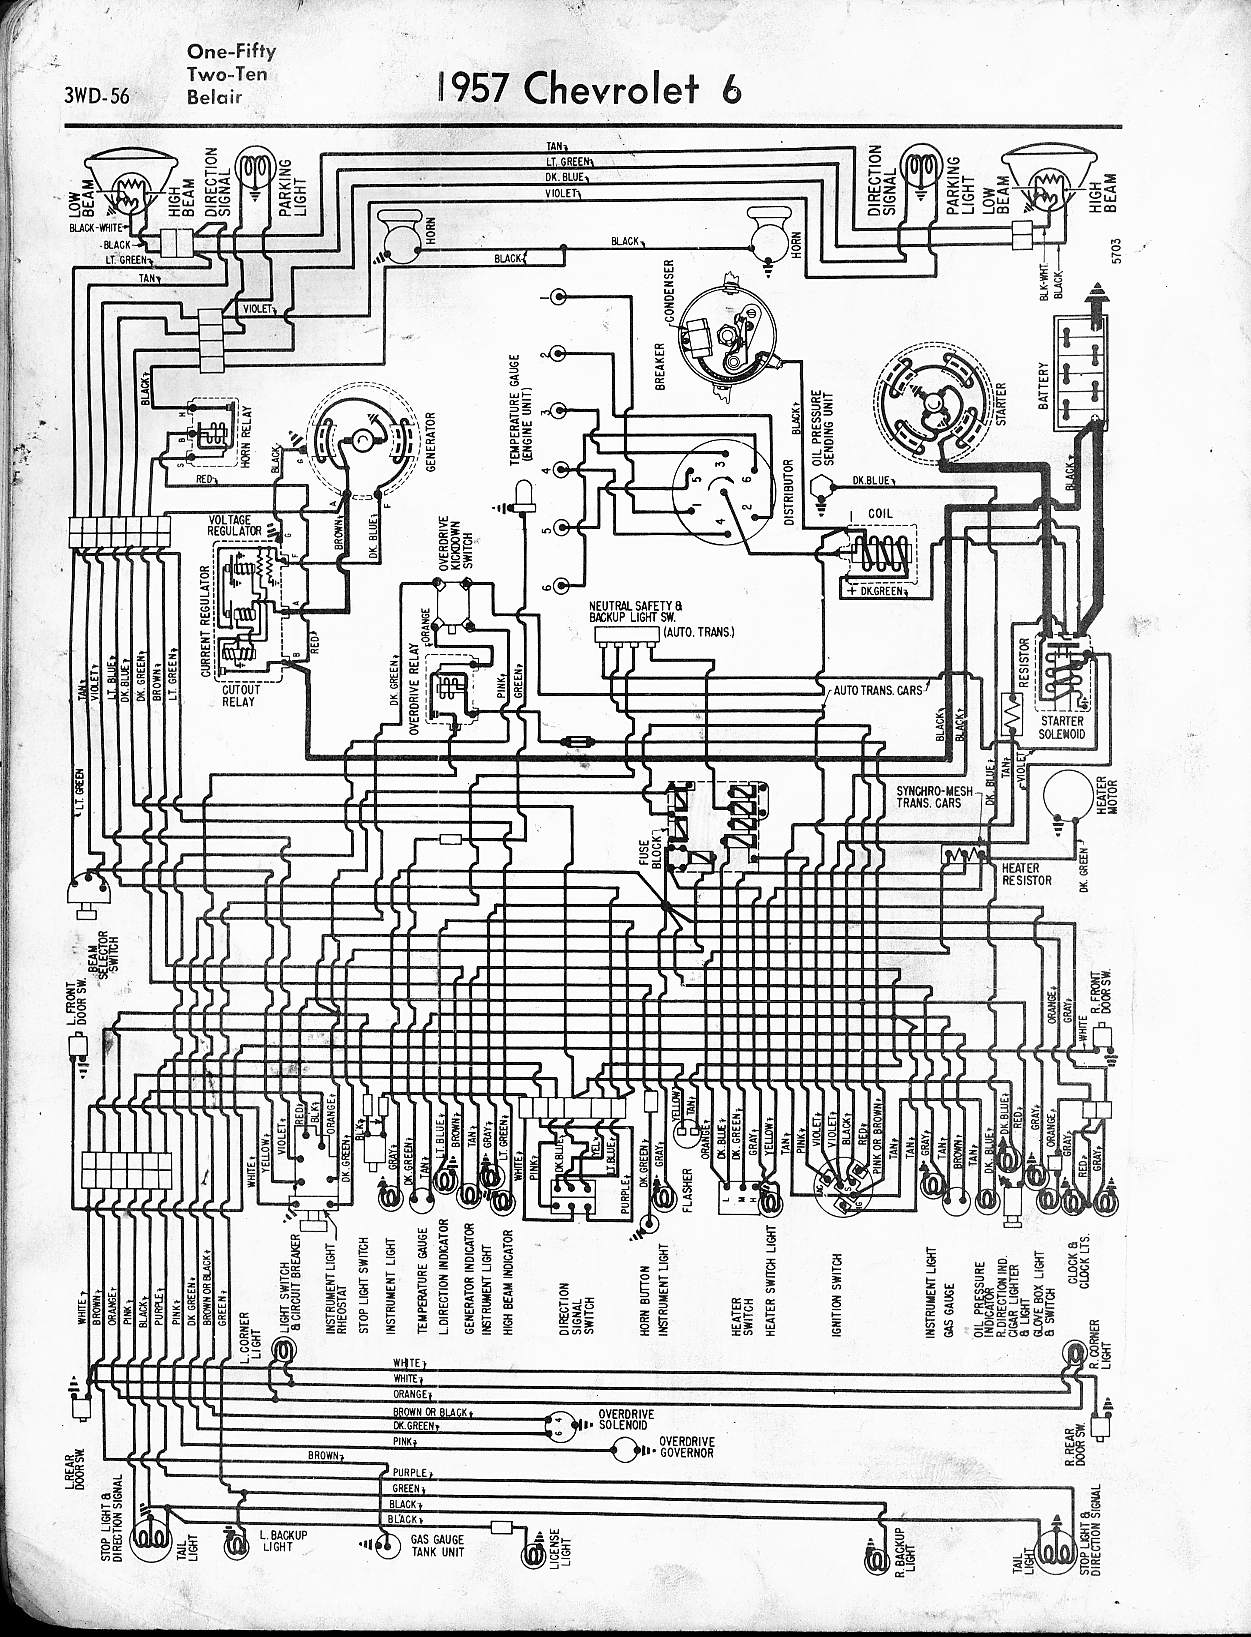 1962 C10 Chevy Truck Wiring Diagram Detailed Diagrams Steering Column Bel Air Circuit Schematic Frame